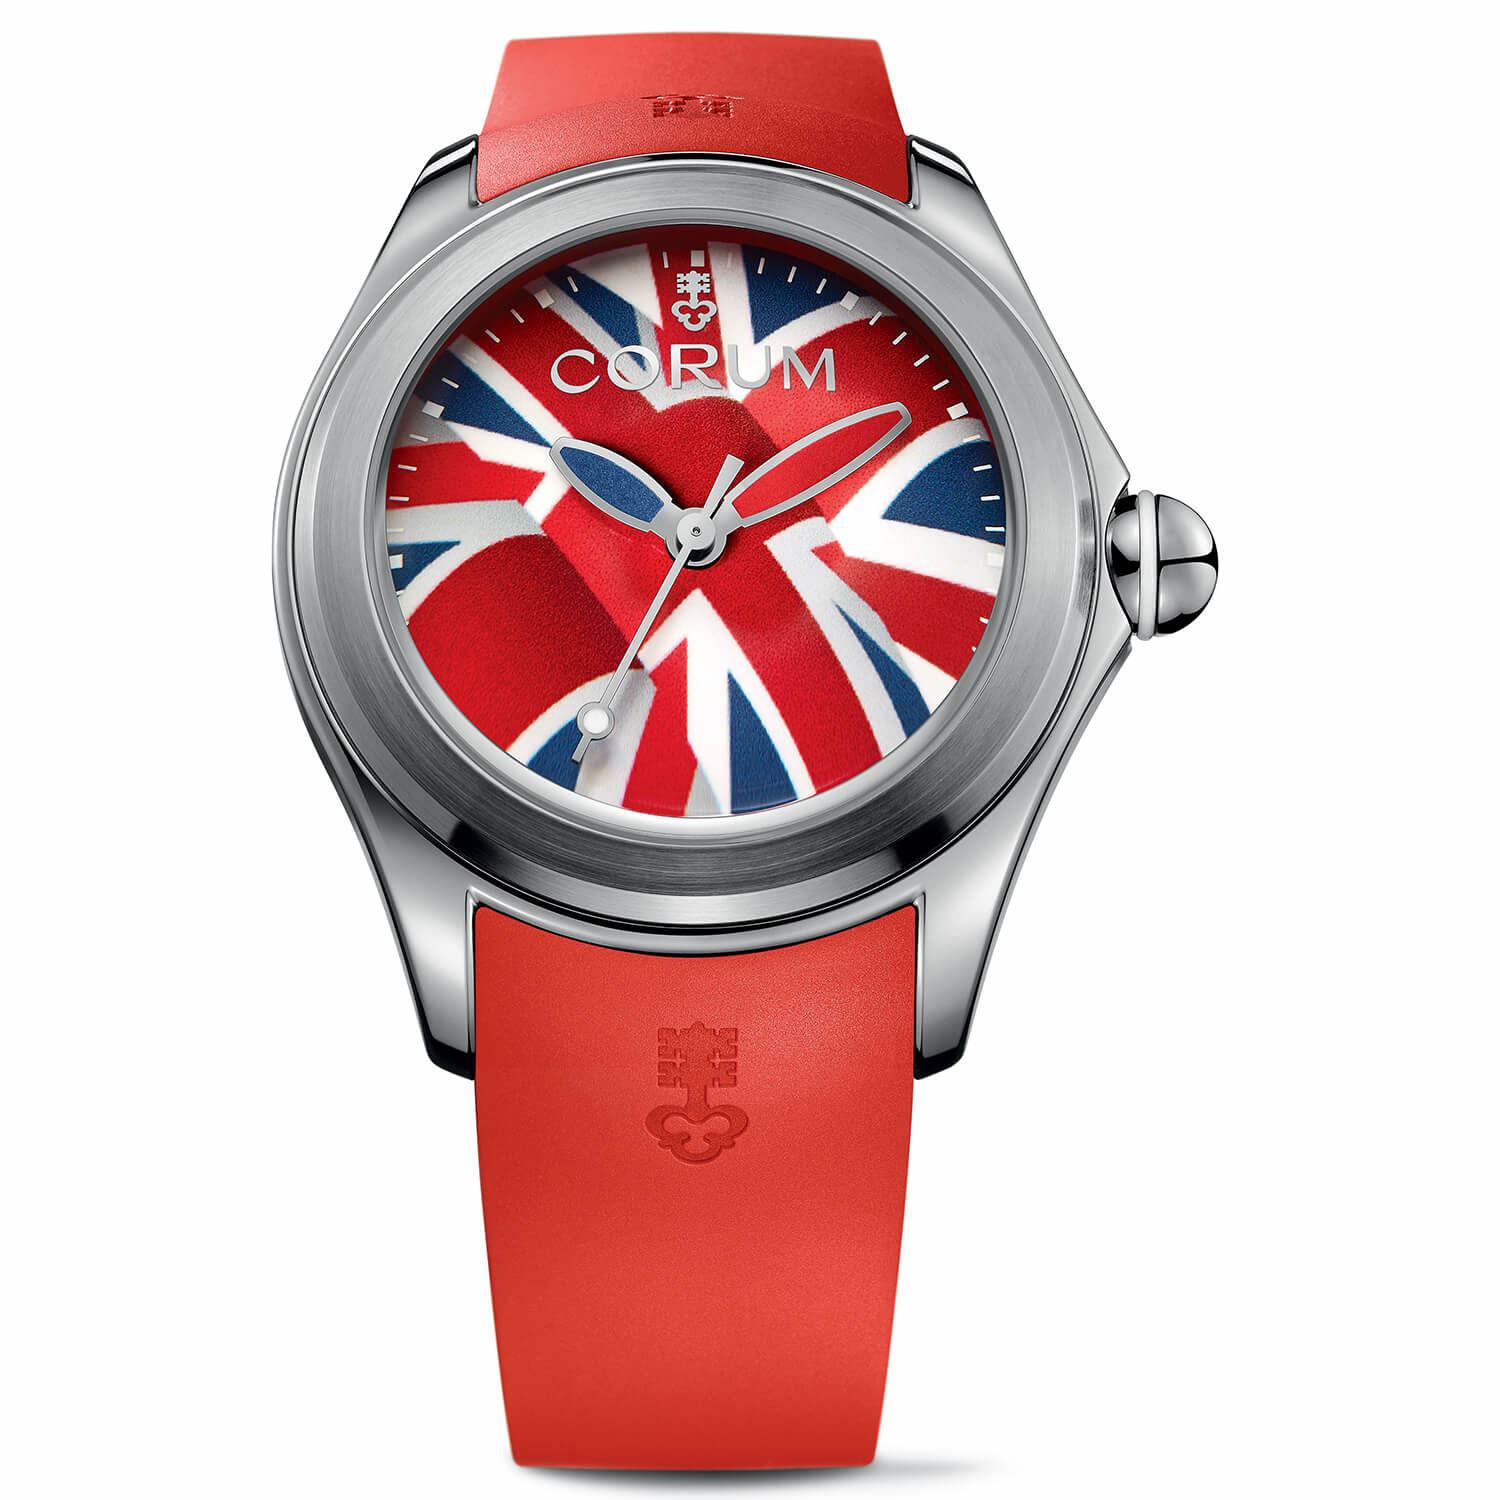 A variation of the Corum Bubble 47 Flag watch.